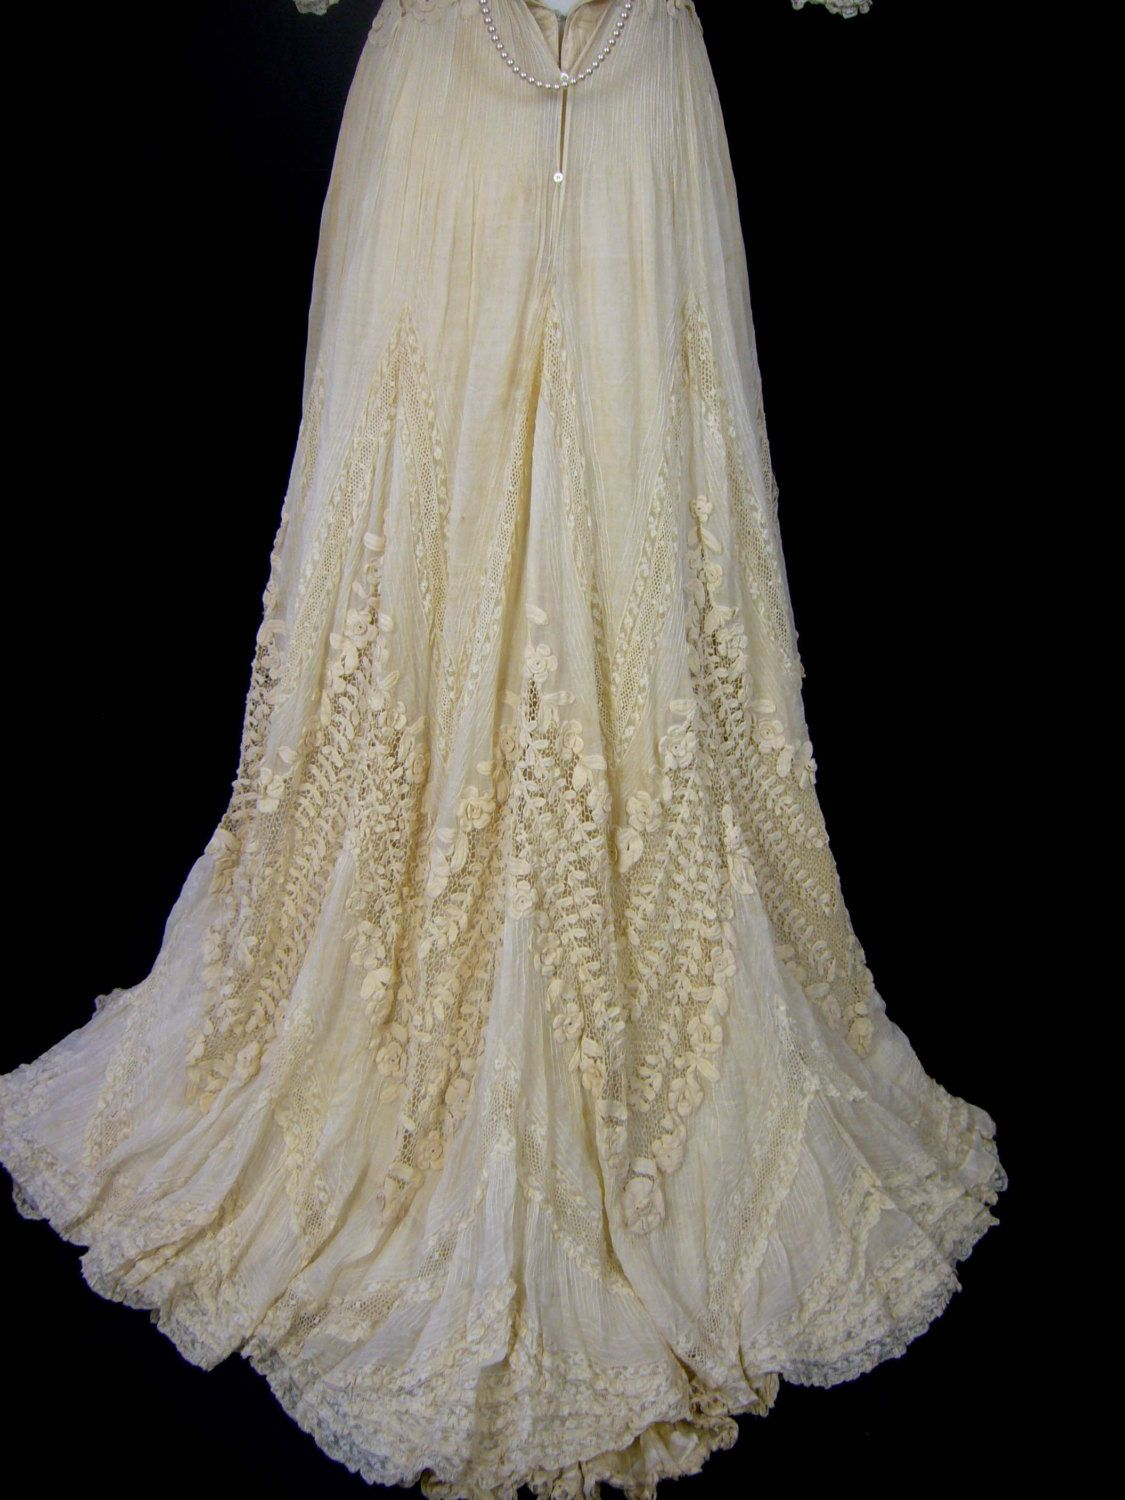 Late 1800s wedding dress